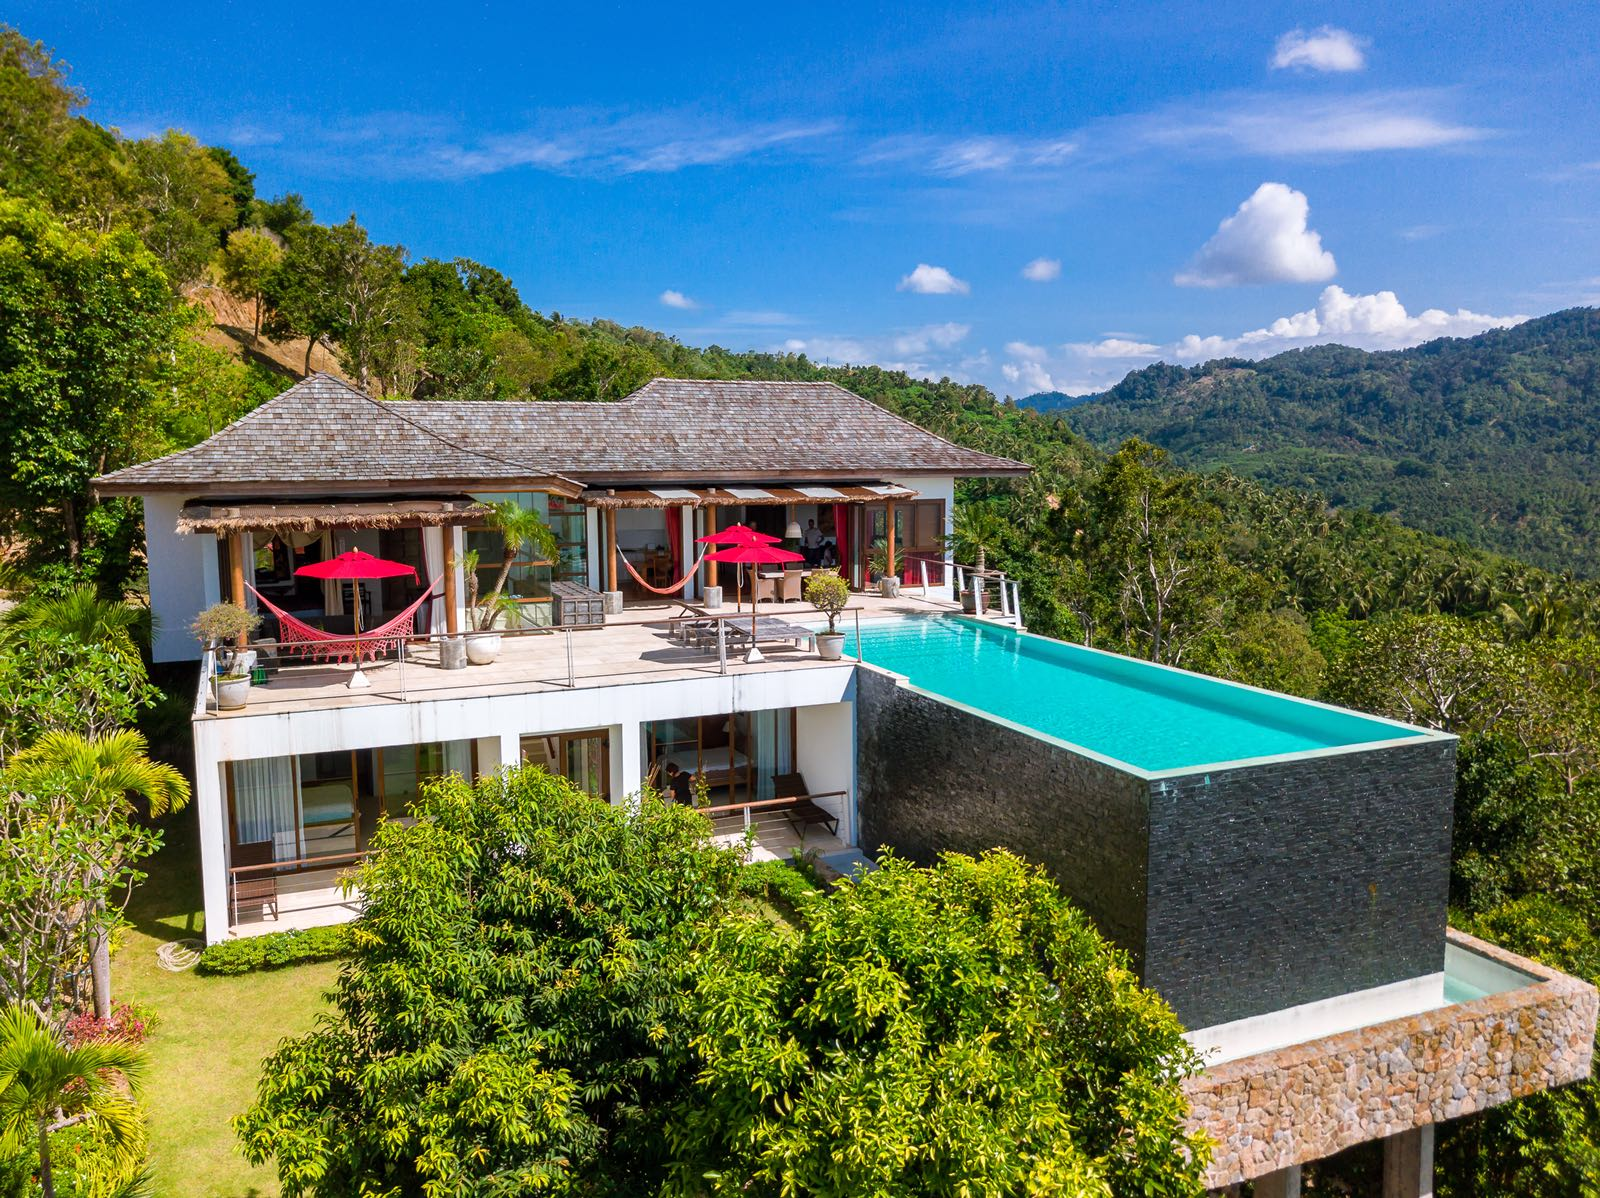 stunning sea view villa in the hills